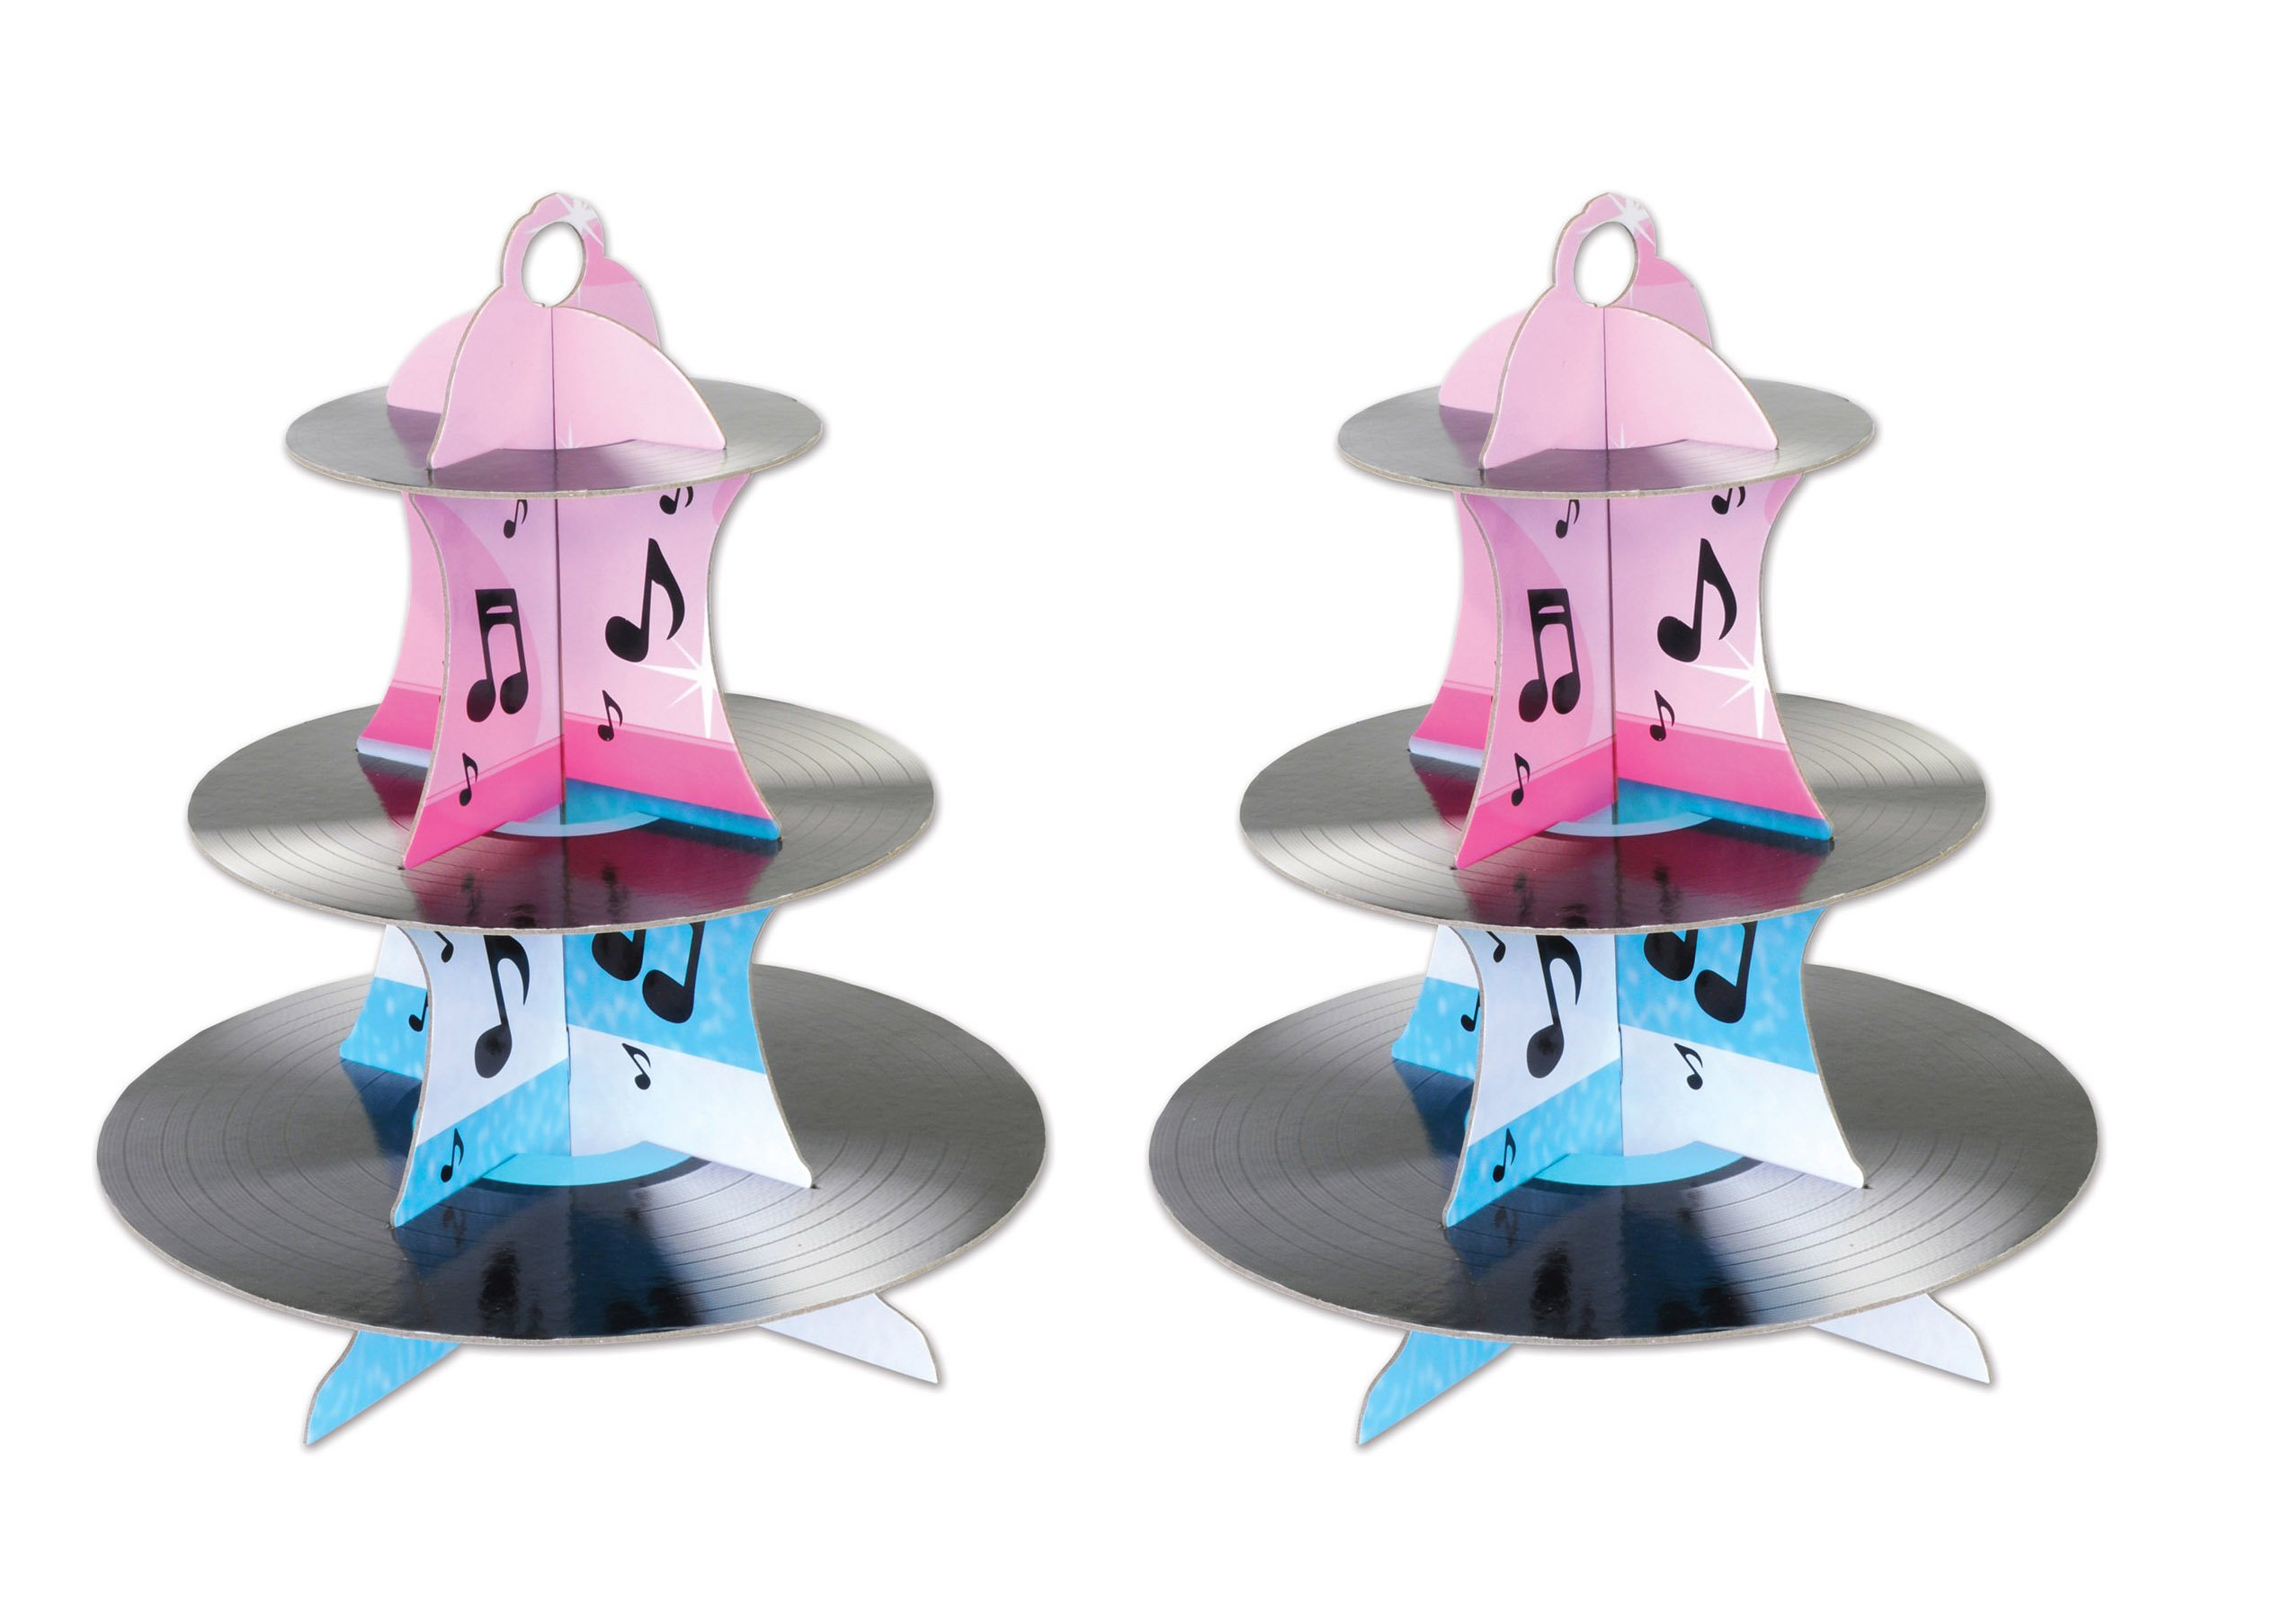 Beistle 54945 2 Piece Rock and Roll Record Cupcake Stand, 13.5'', Multicolor